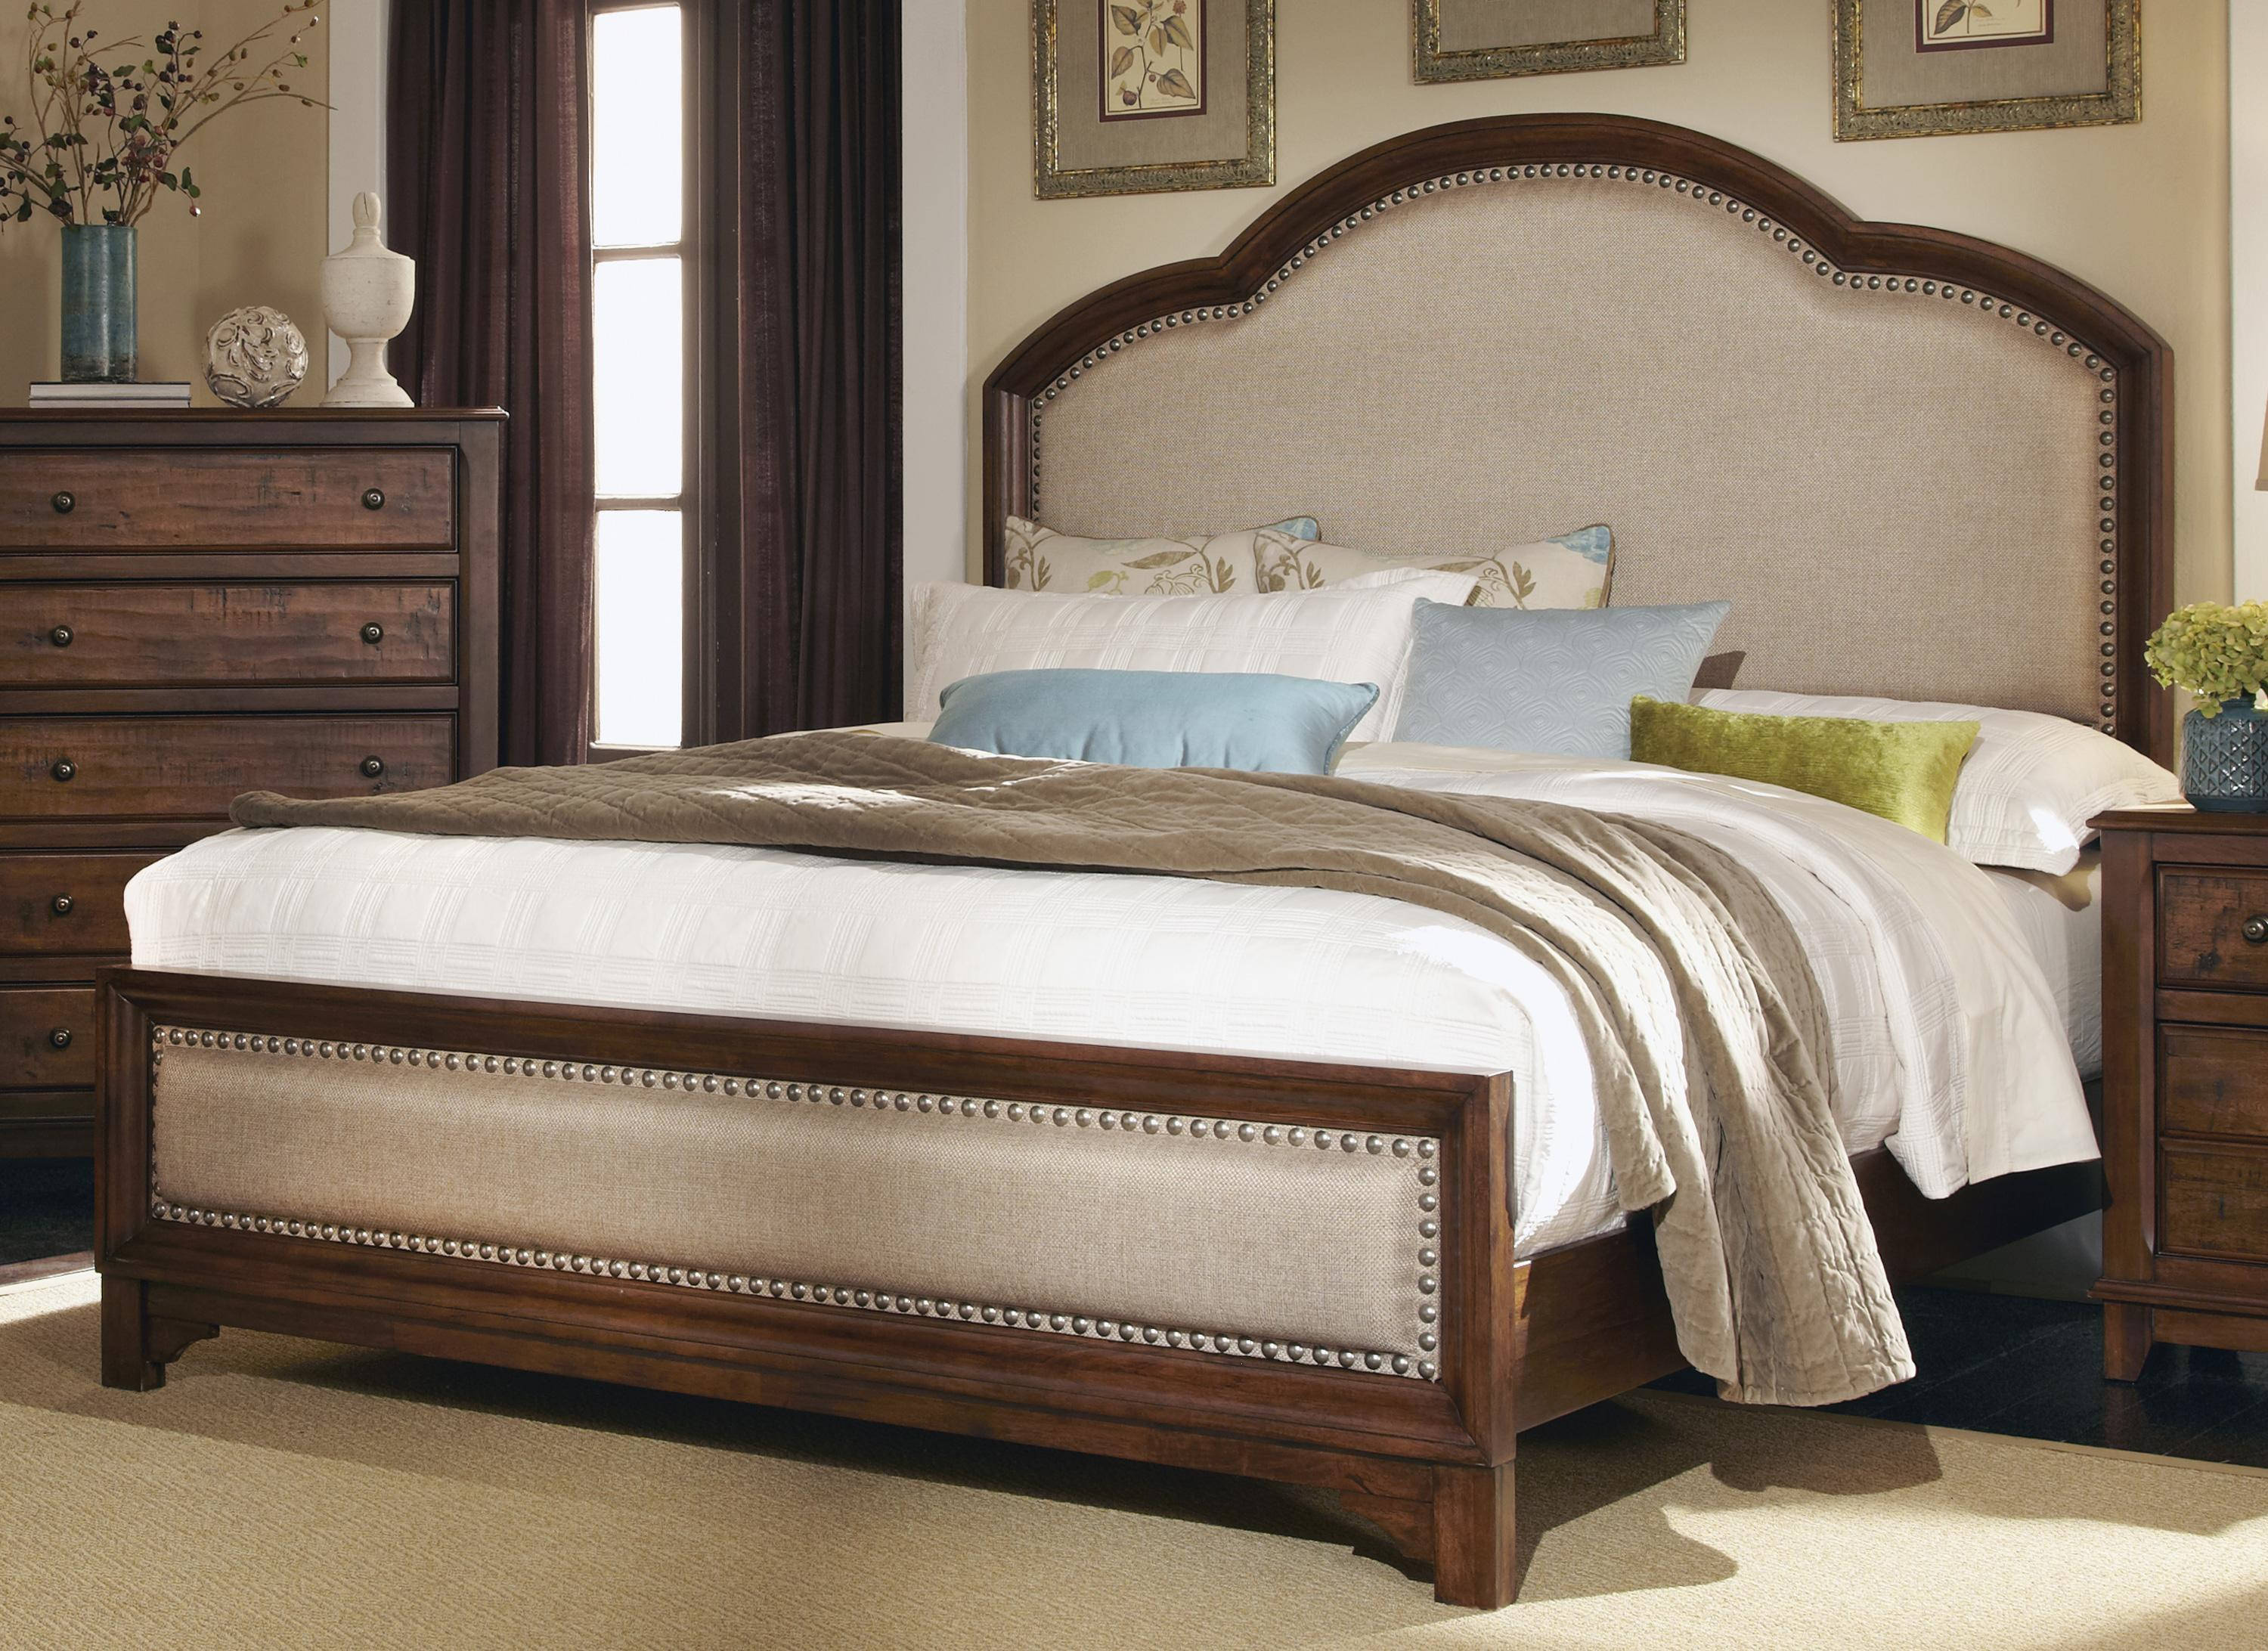 Coaster furniture laughton cocoa brown upholstered headboard queen bed click to enlarge